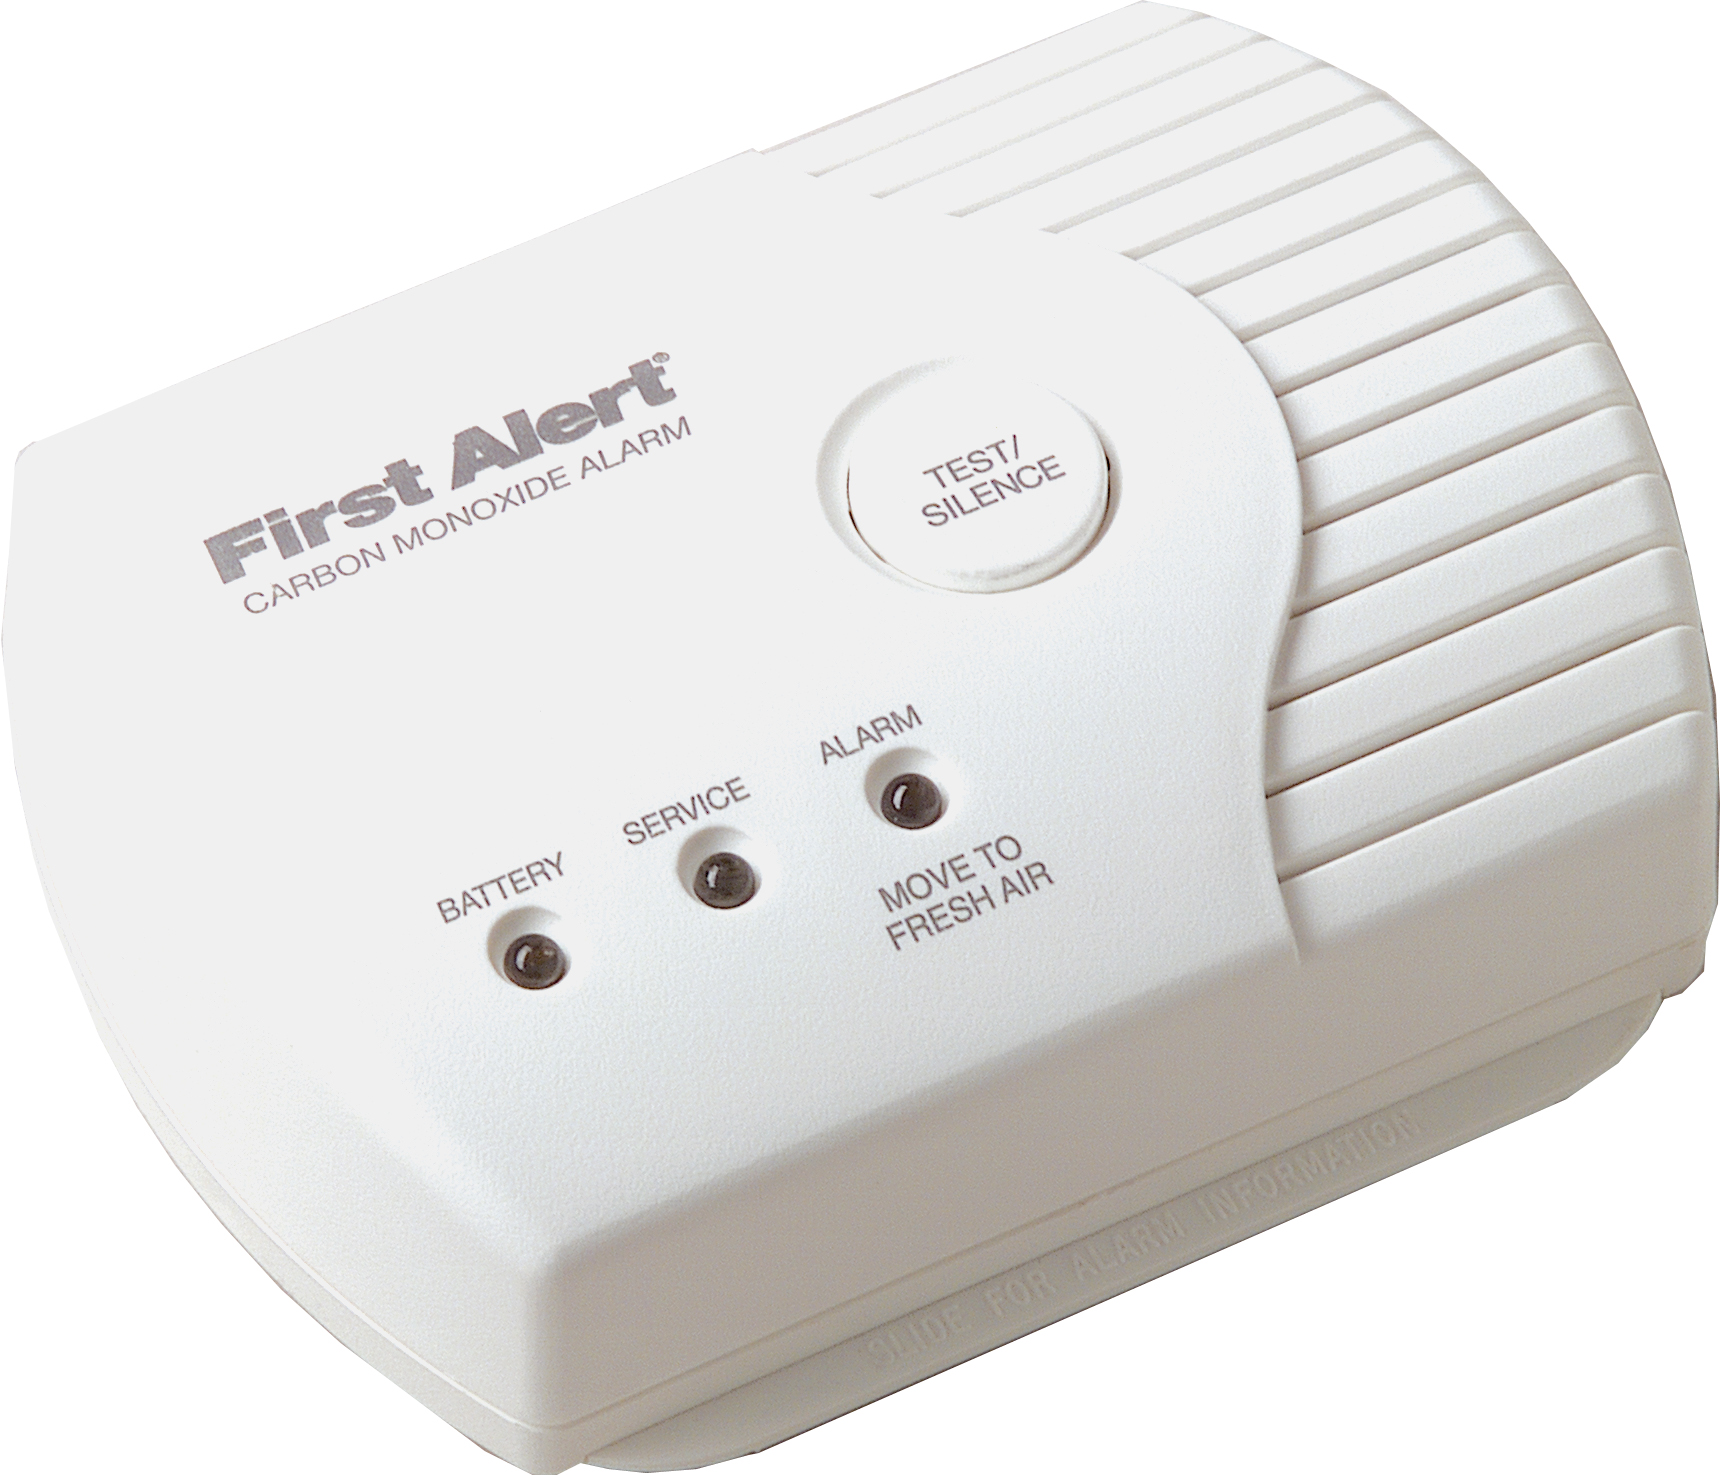 First Alert Carbon Monoxide Detector Red Light Flashing